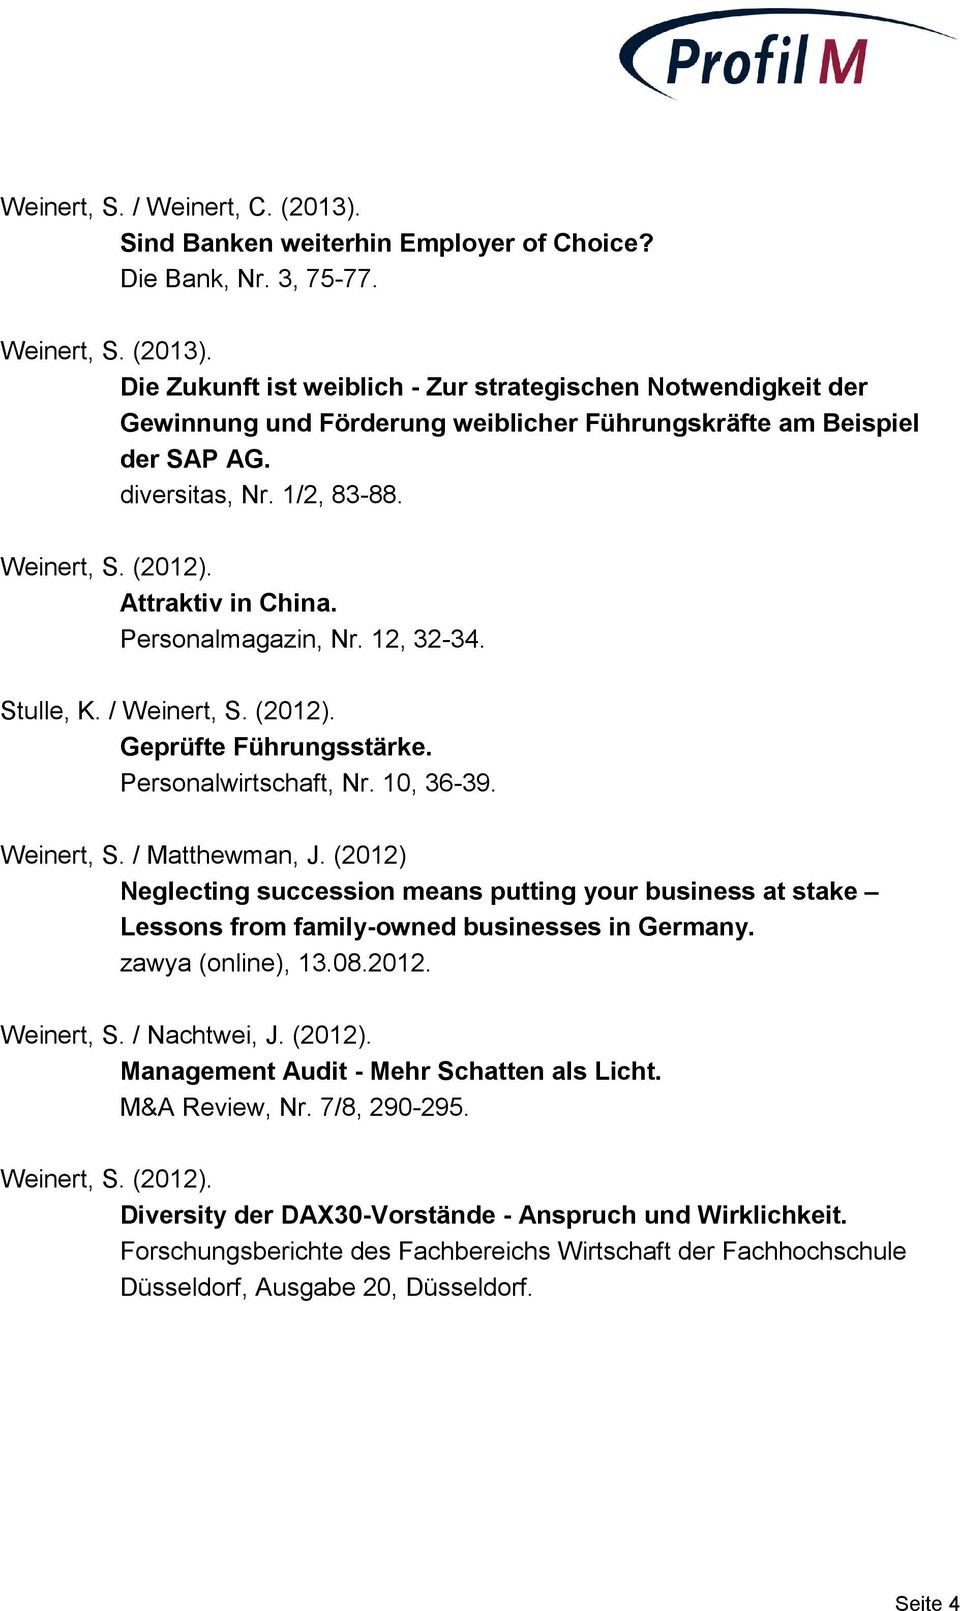 Weinert, S. / Matthewman, J. (2012) Neglecting succession means putting your business at stake Lessons from family-owned businesses in Germany. zawya (online), 13.08.2012. Weinert, S. / Nachtwei, J.